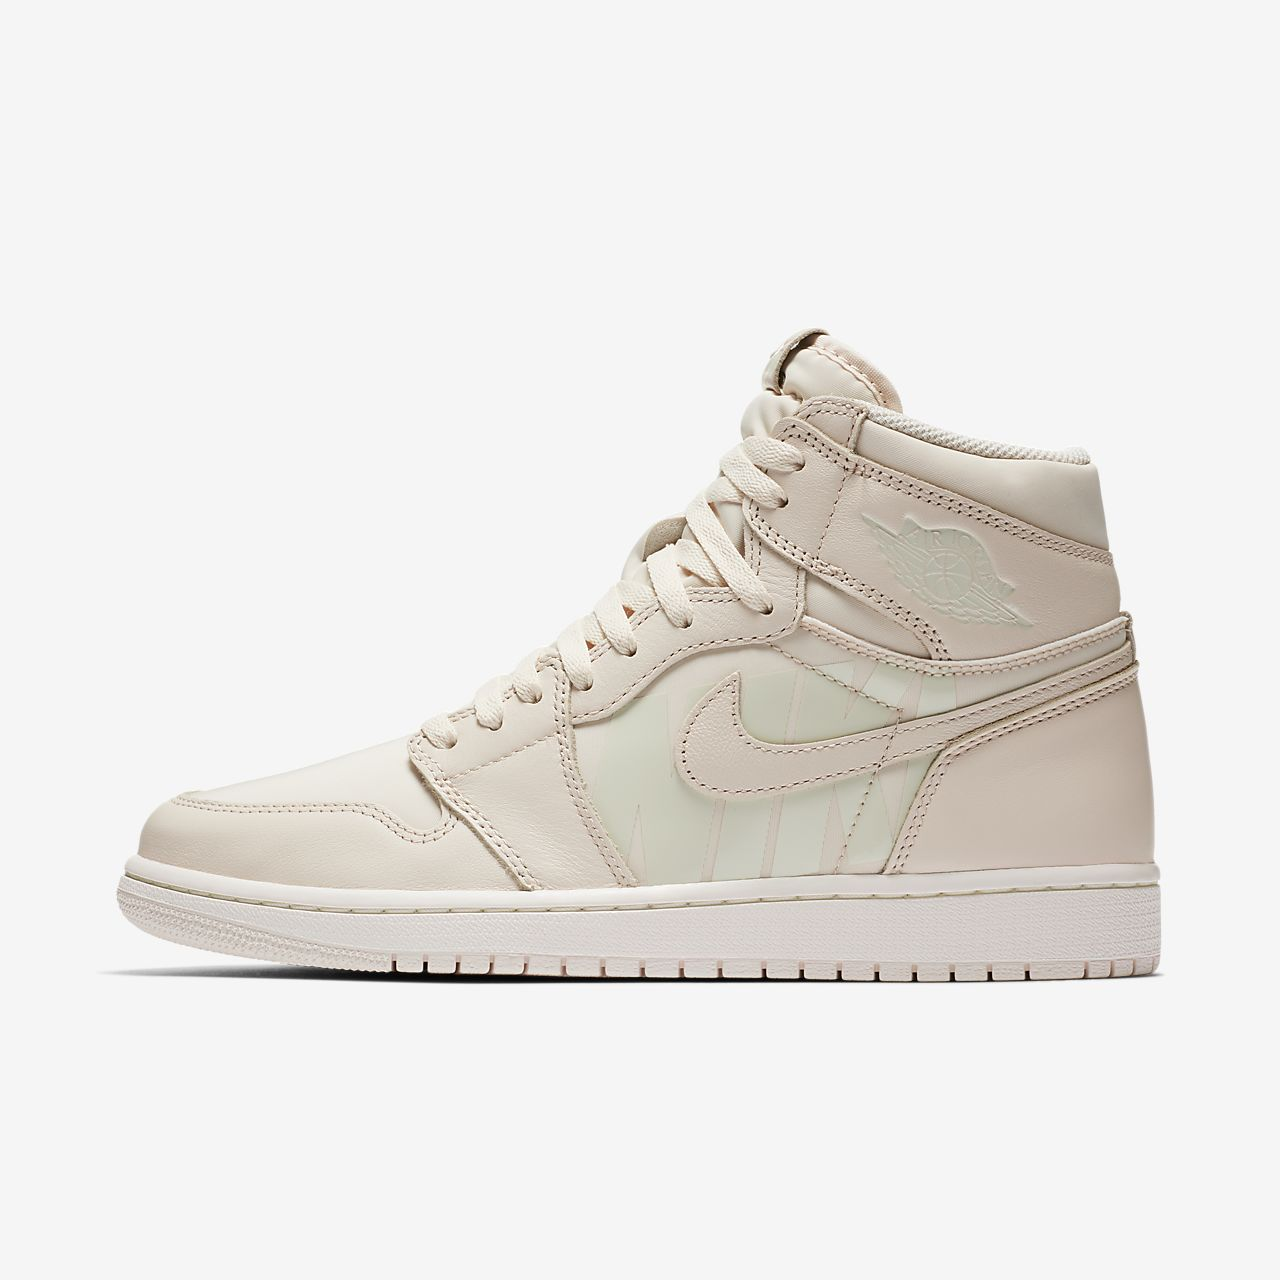 f4a805dbcfa Air Jordan 1 Retro High OG Shoe. Nike.com